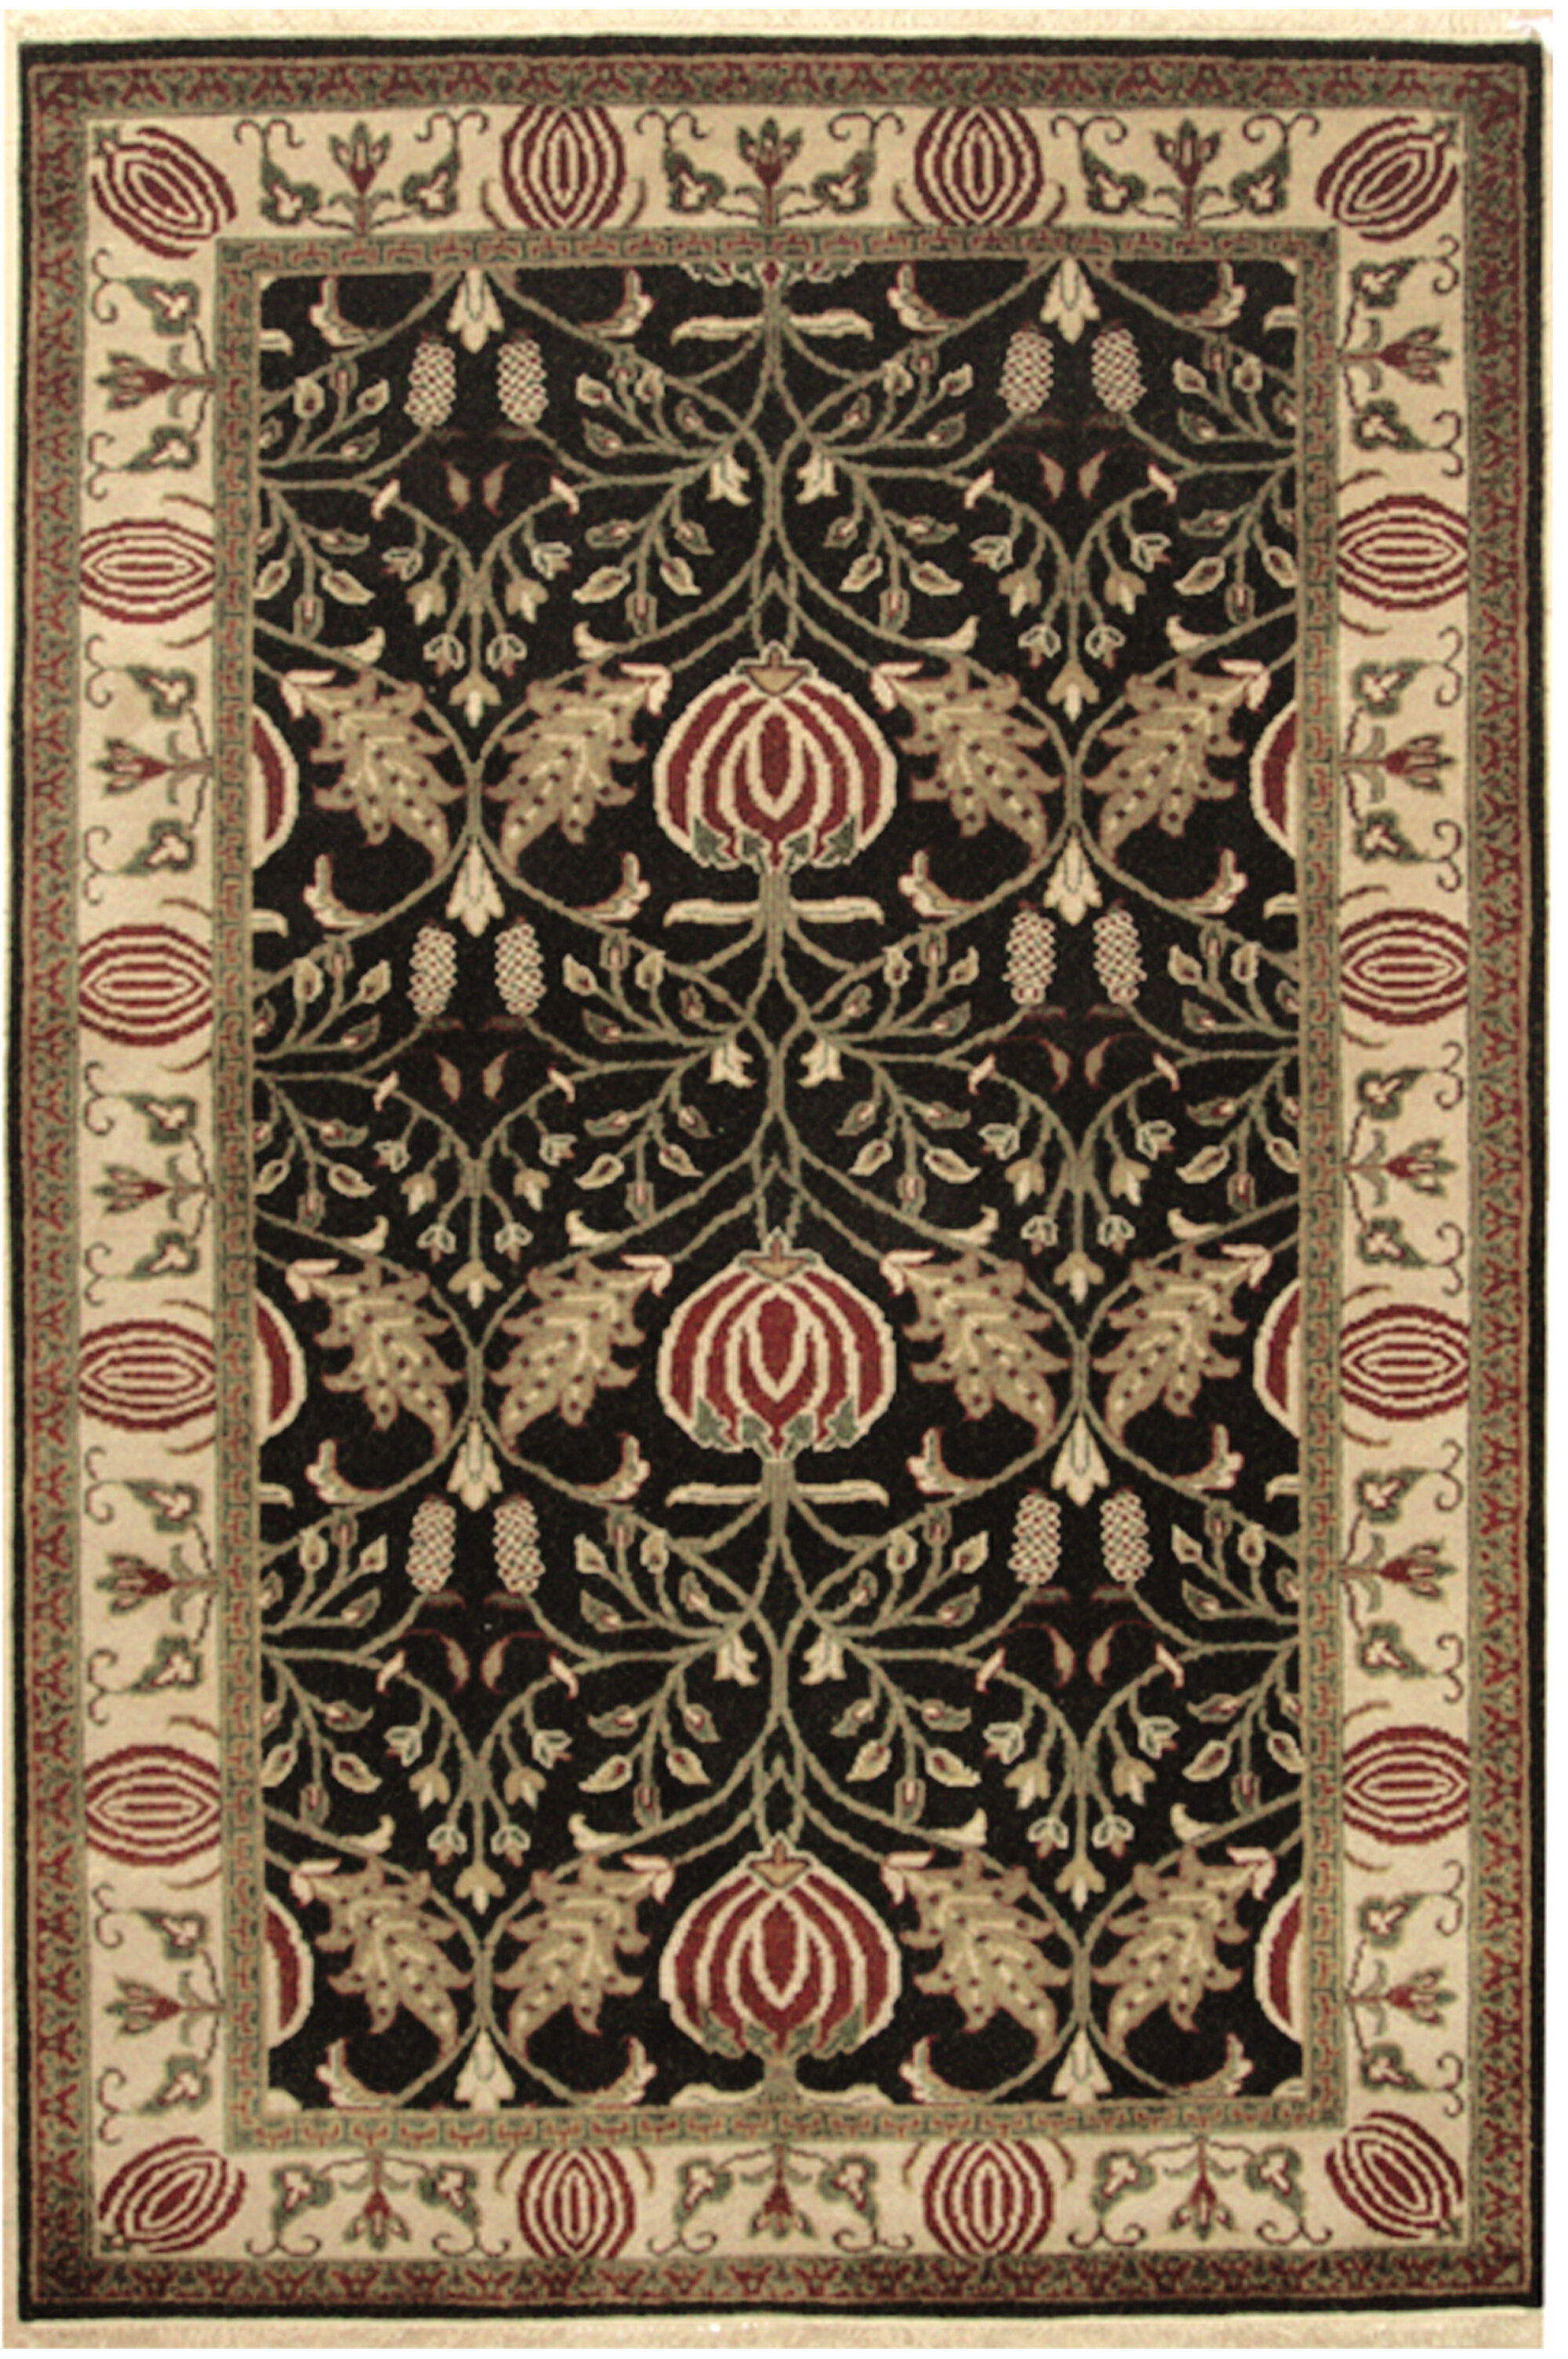 Crafts Hand Tufted Wool Area Rug